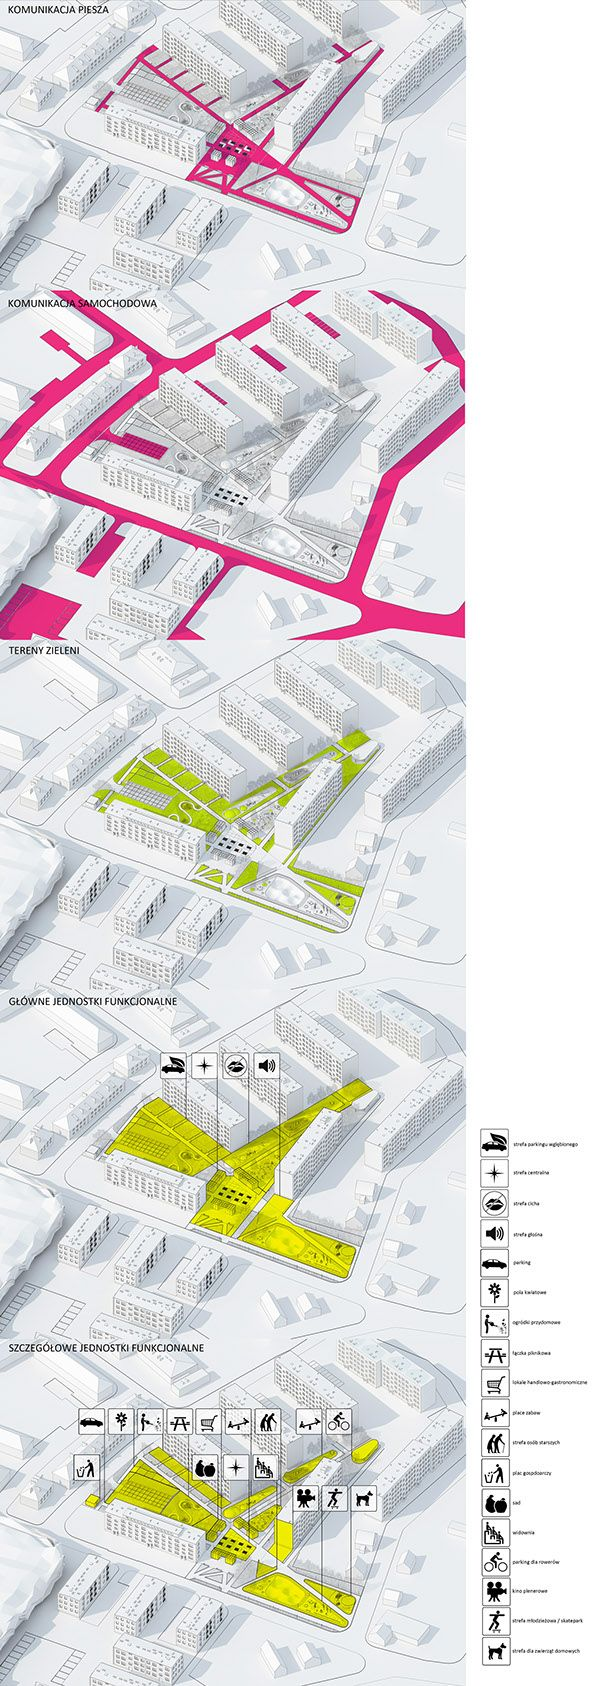 Square redevelopment in Kuznia Raciborska on Behance